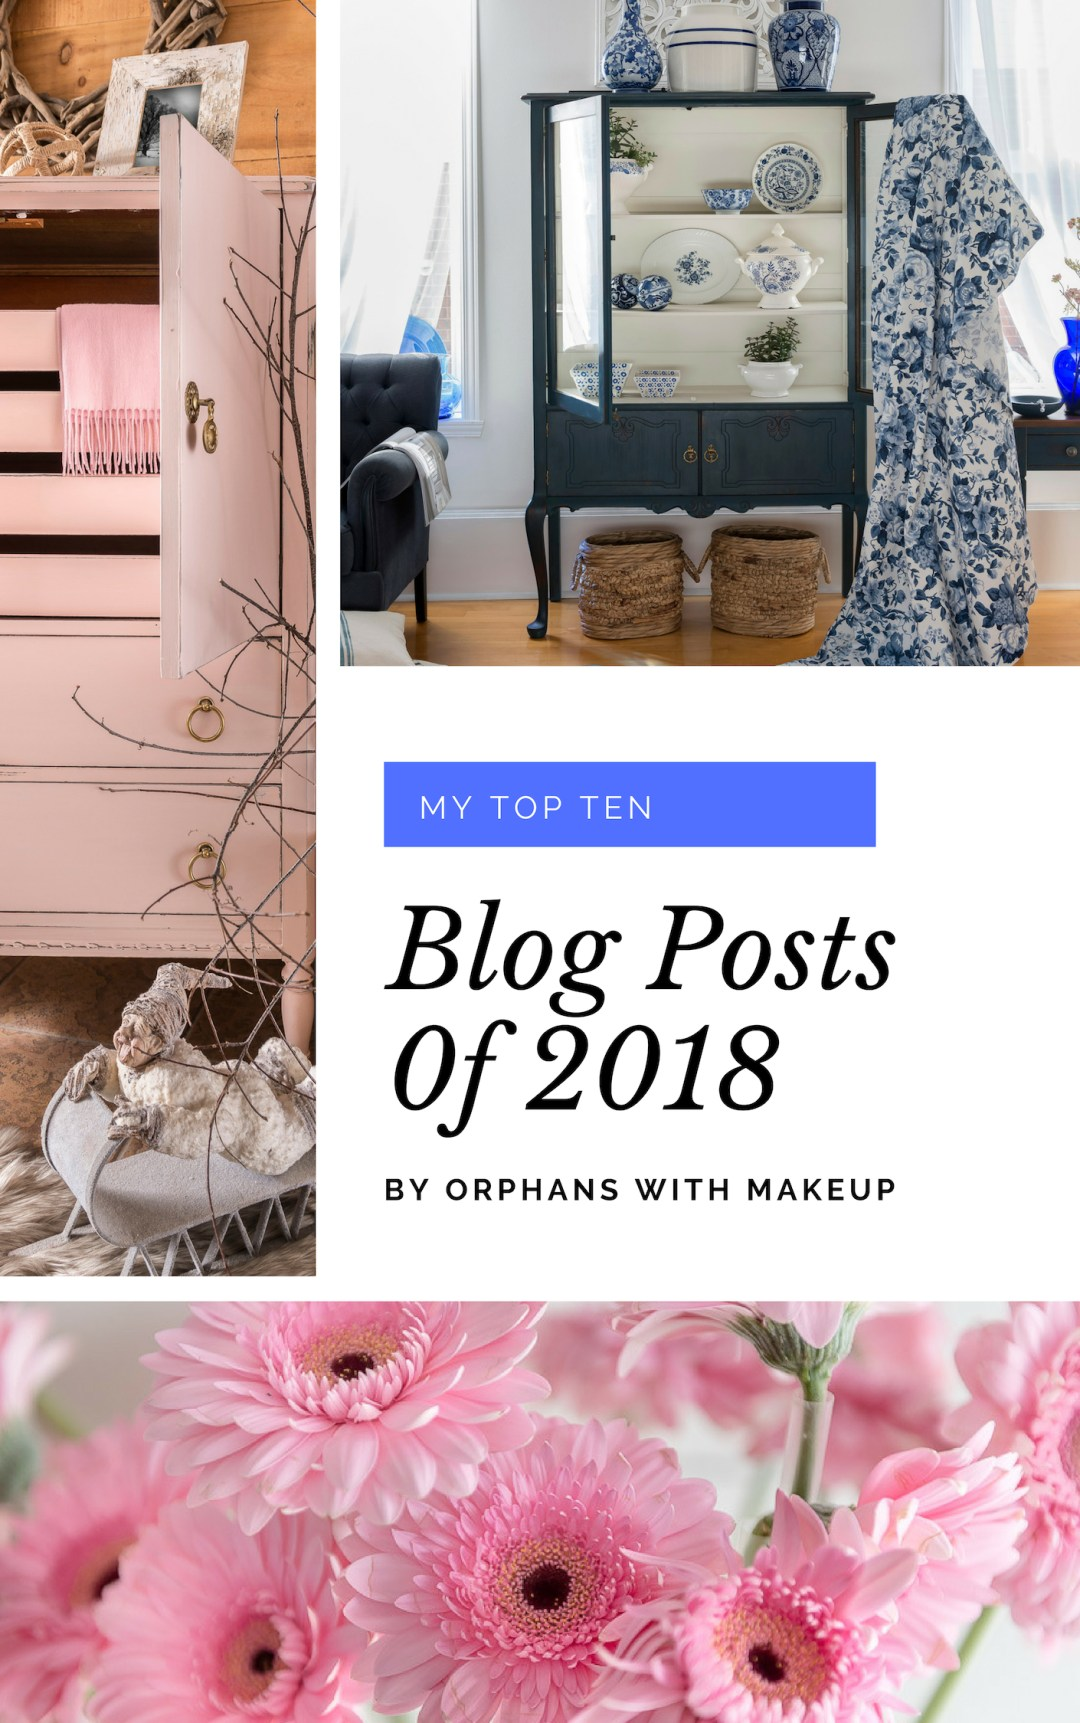 YOUR TOP 10 FAVOURITE POSTS OF 2018